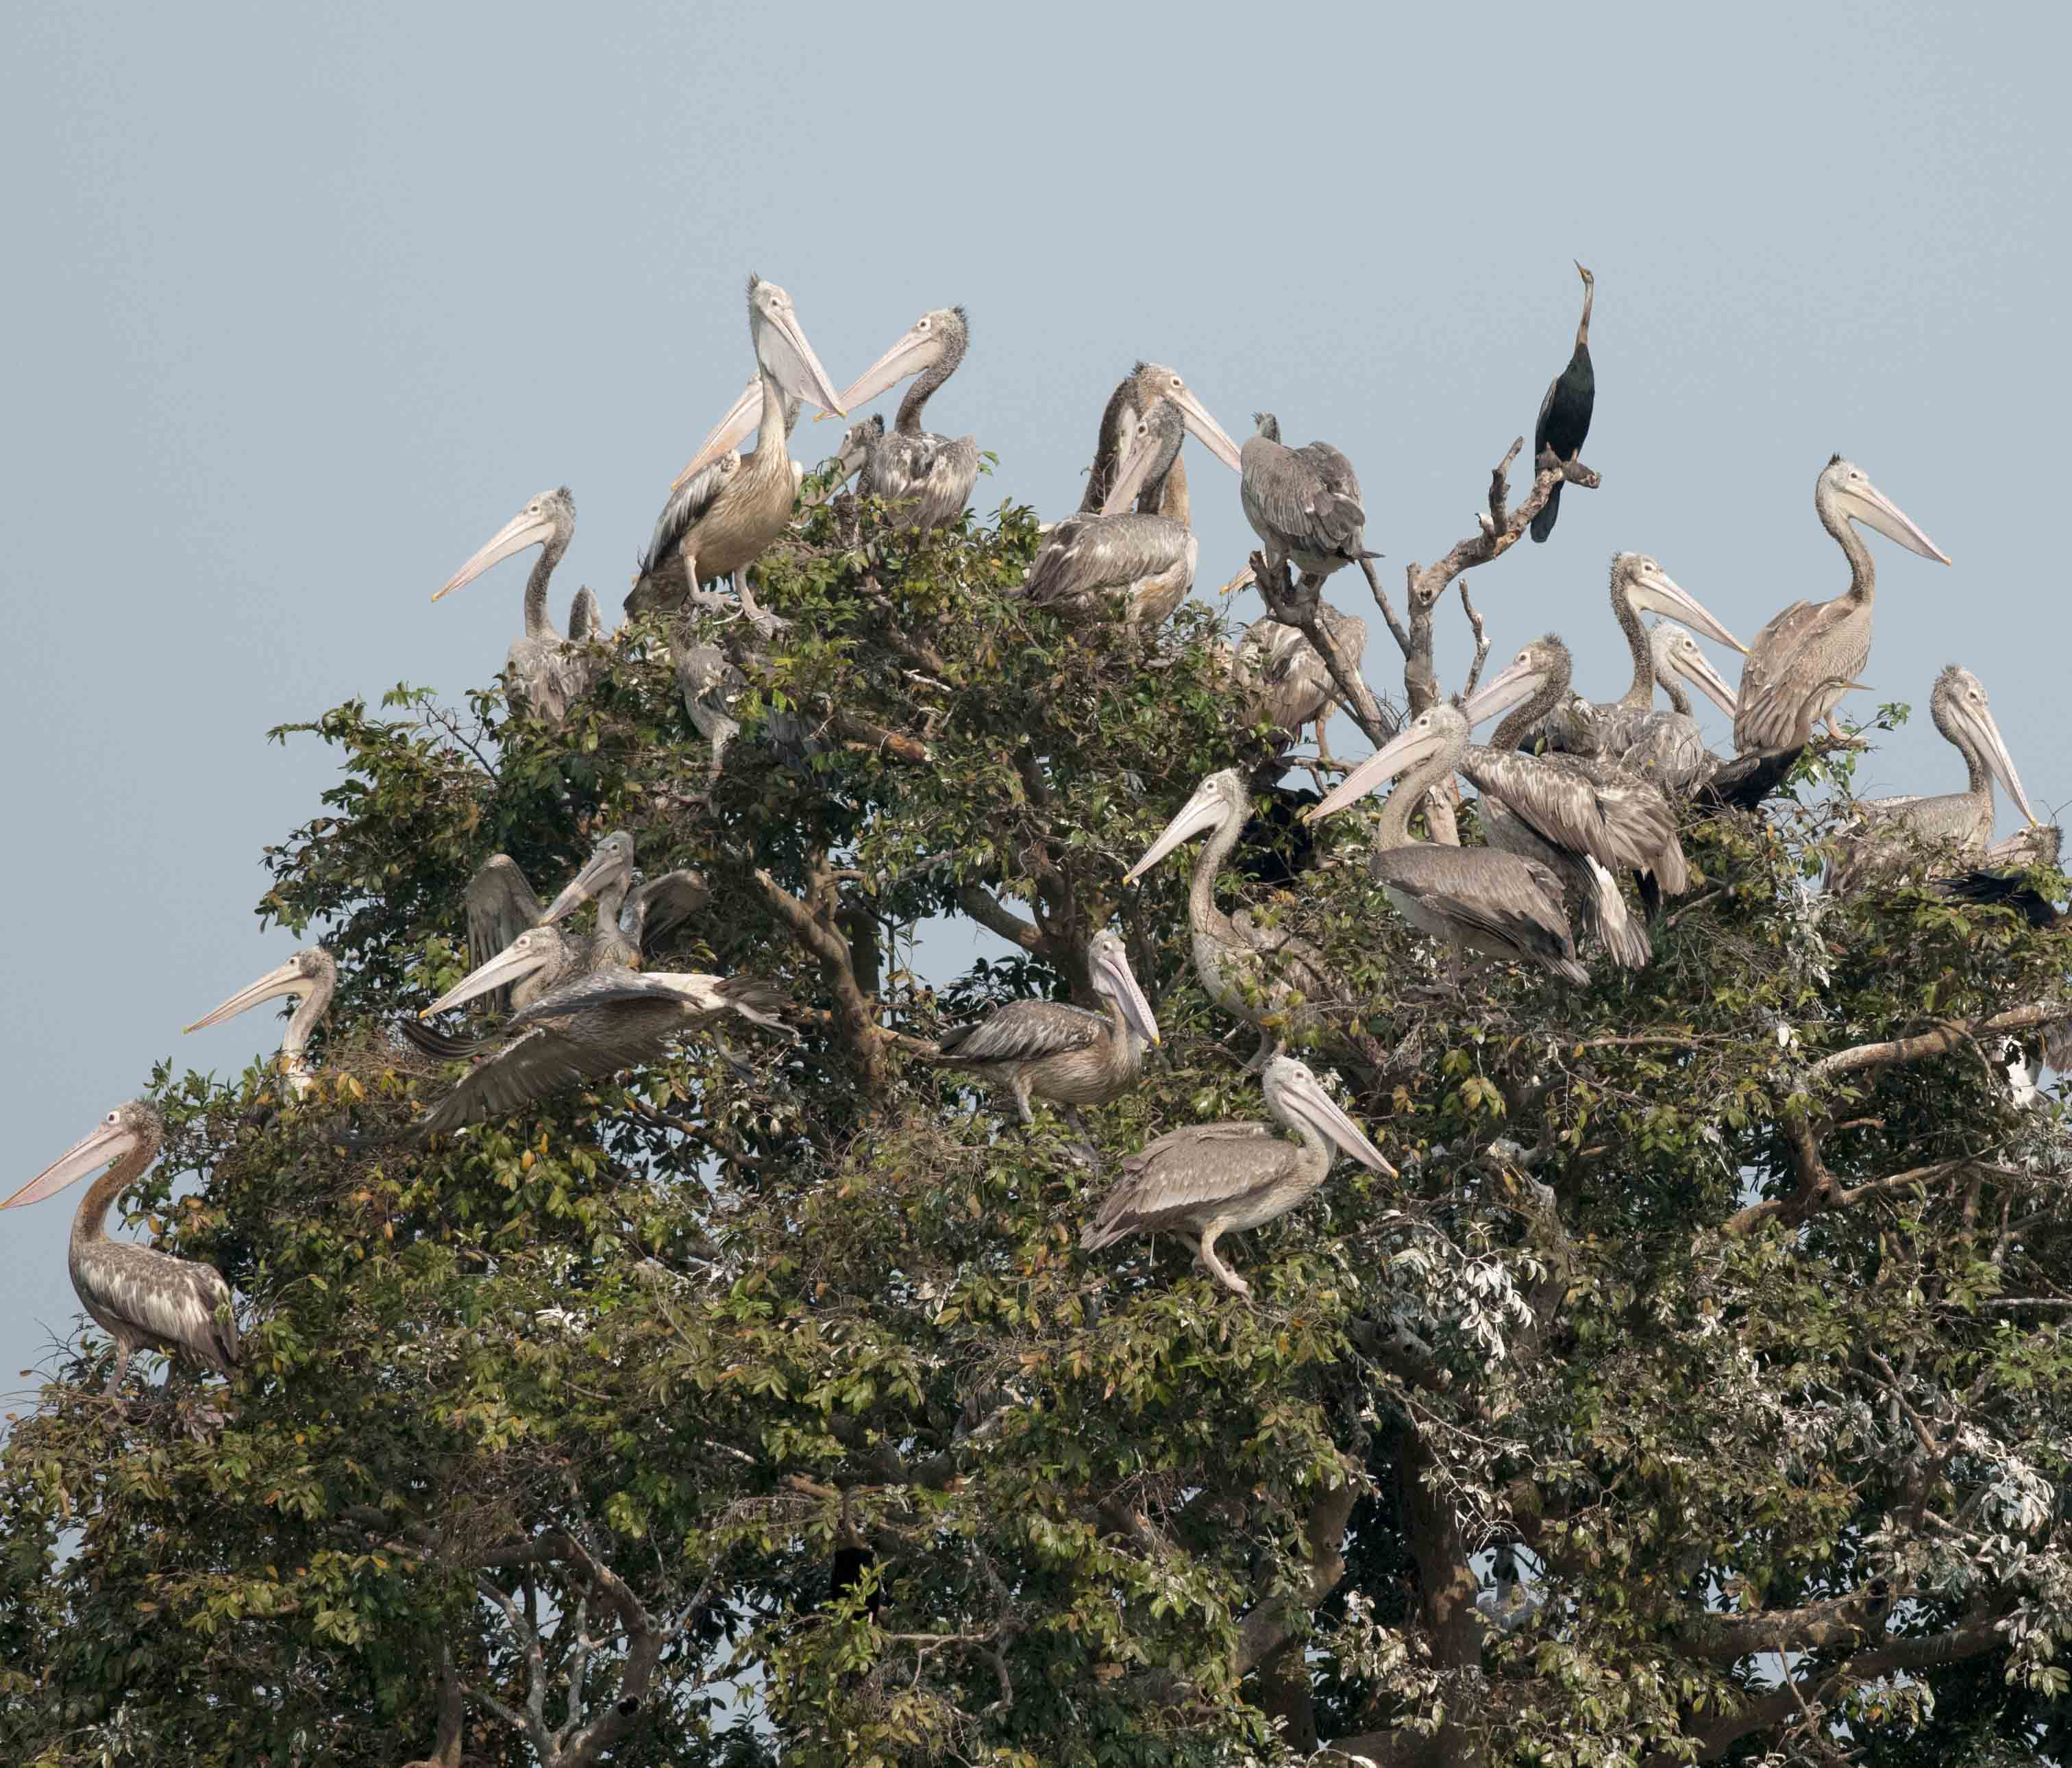 birding-bird-photography-cultures-in-the-southern-vietnam-and-cambodia